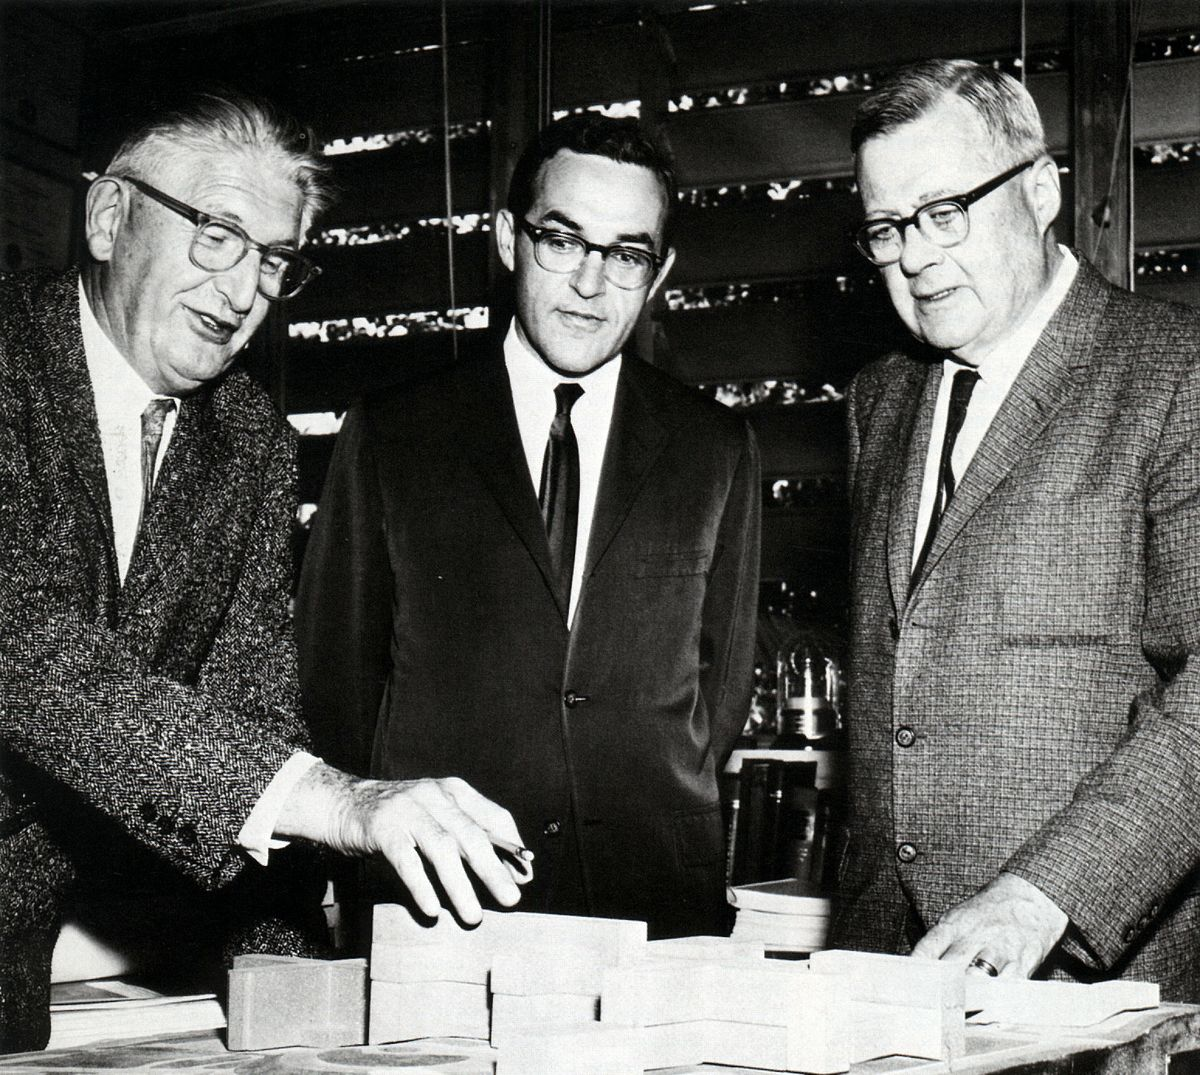 Stafford Warren, Sherman Mellinkoff, John Field